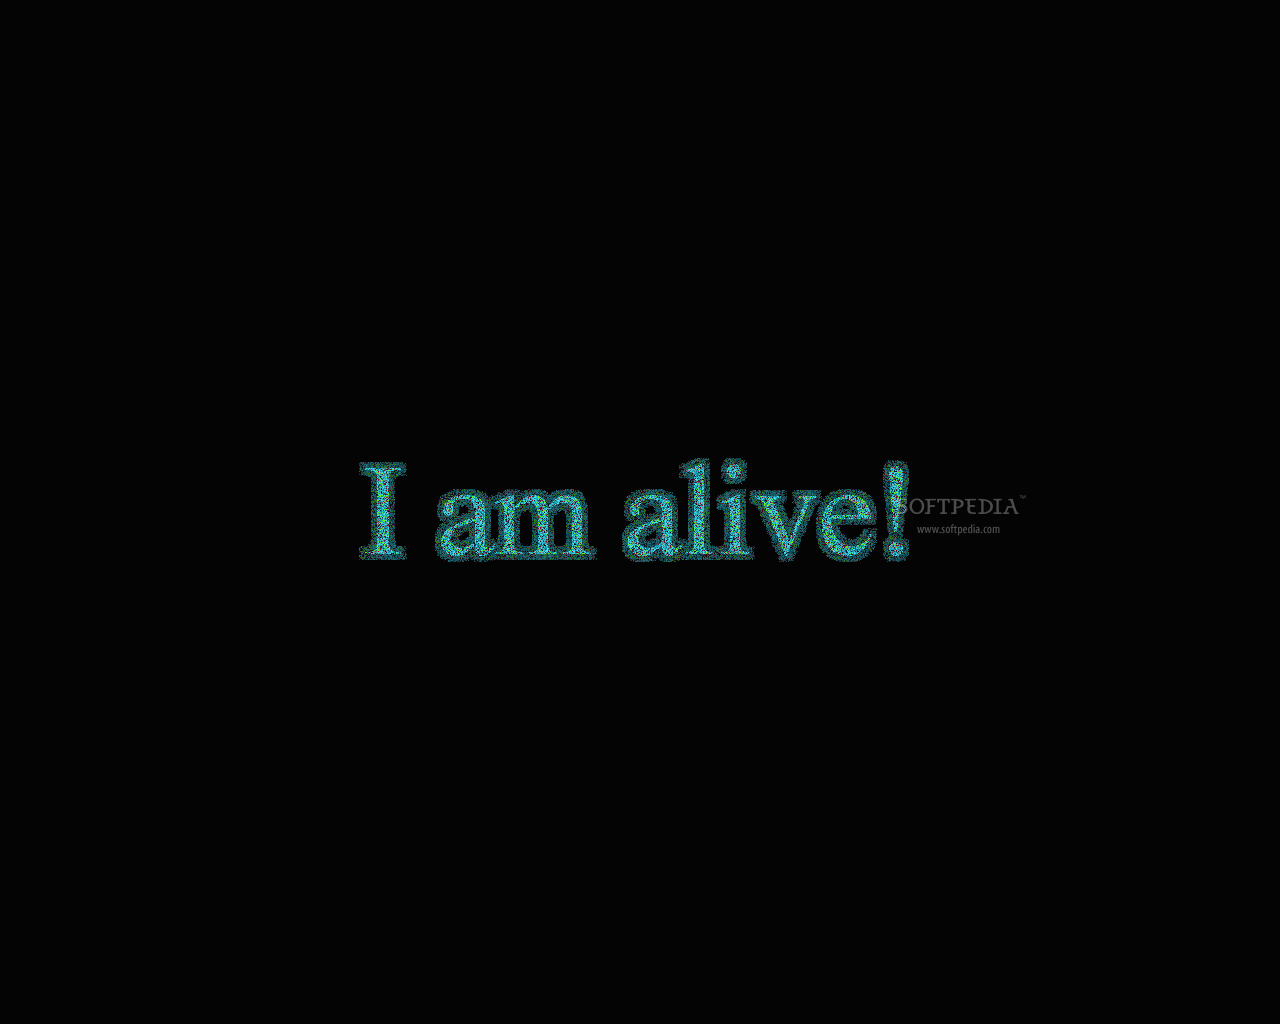 Alive wallpapers Anime HQ Alive pictures 4K Wallpapers 1280x1024